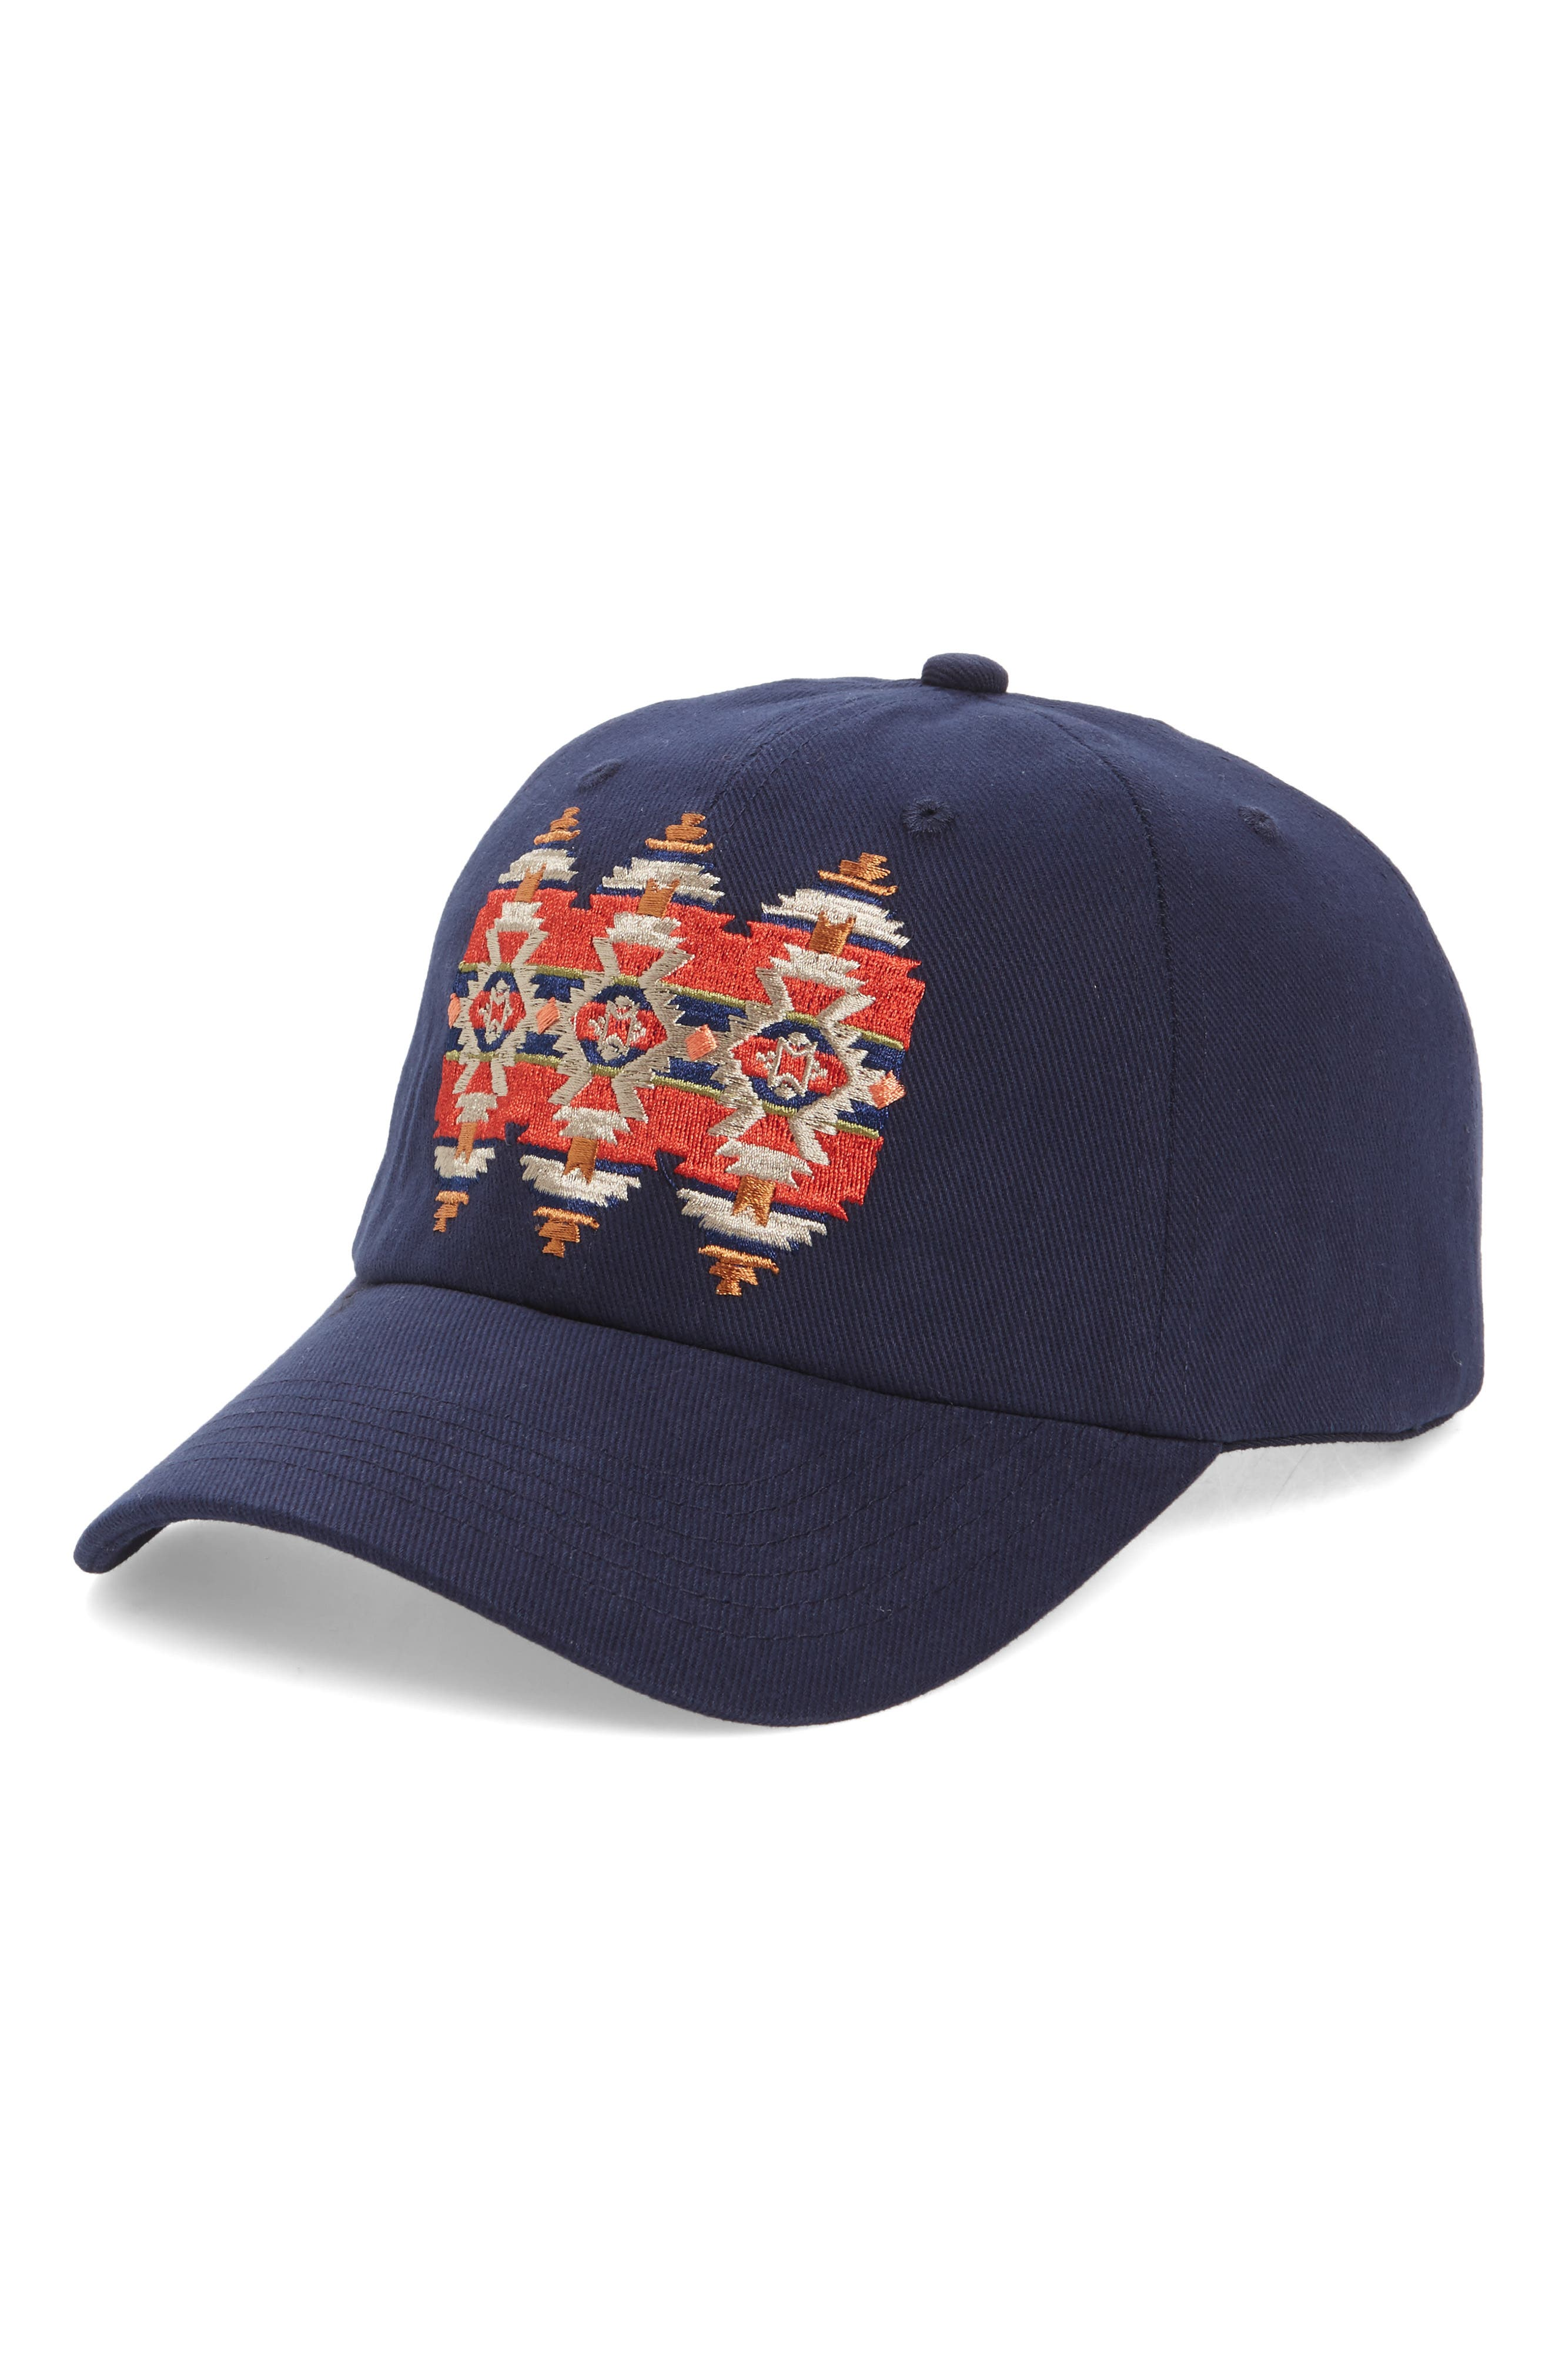 Pendleton Embroidered Ball Cap